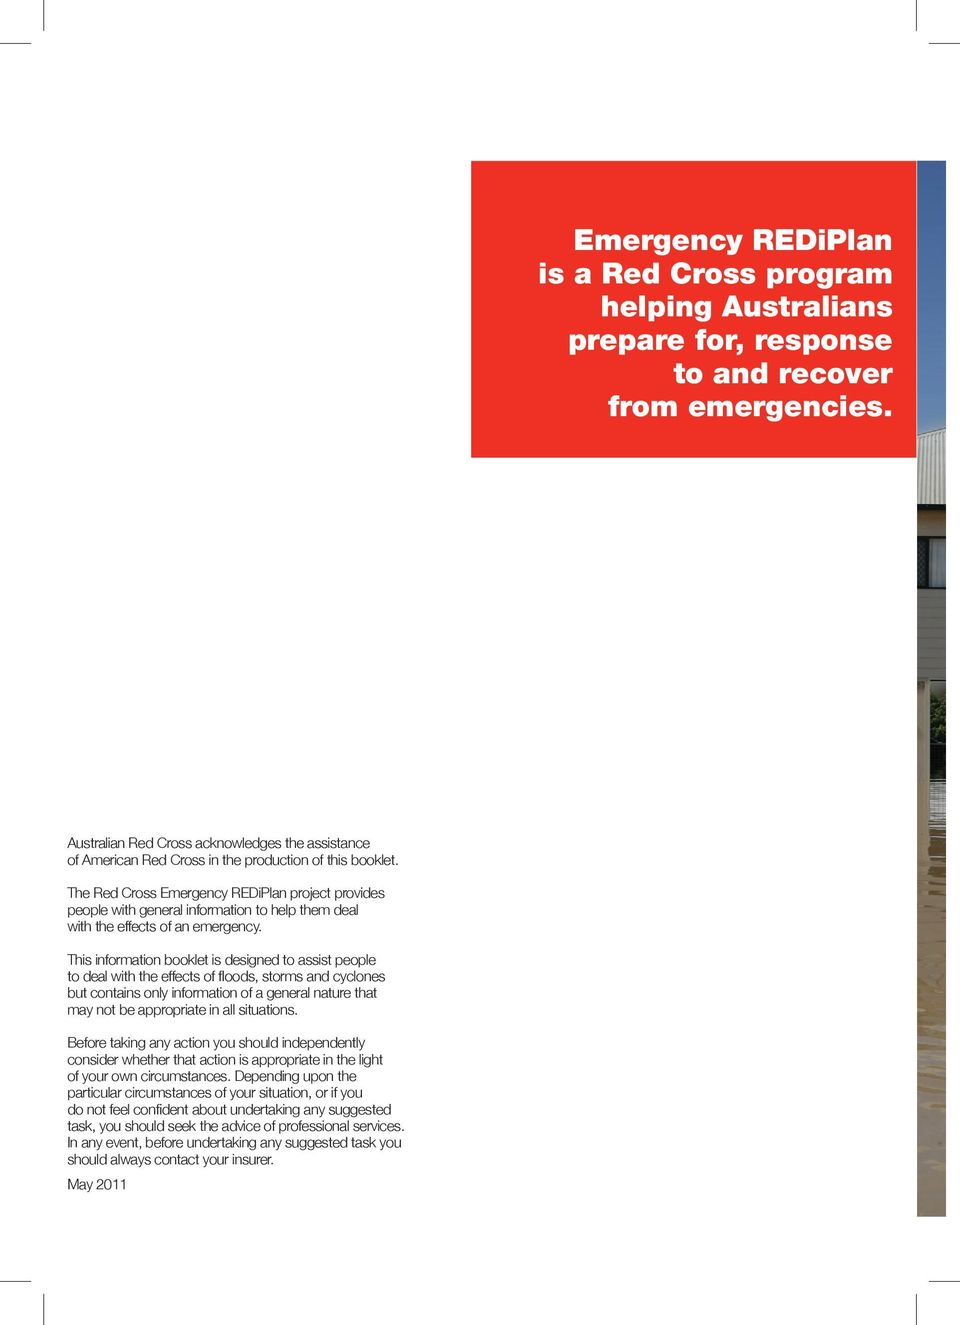 The Red Cross Emergency REDiPlan project provides people with general information to help them deal with the effects of an emergency.